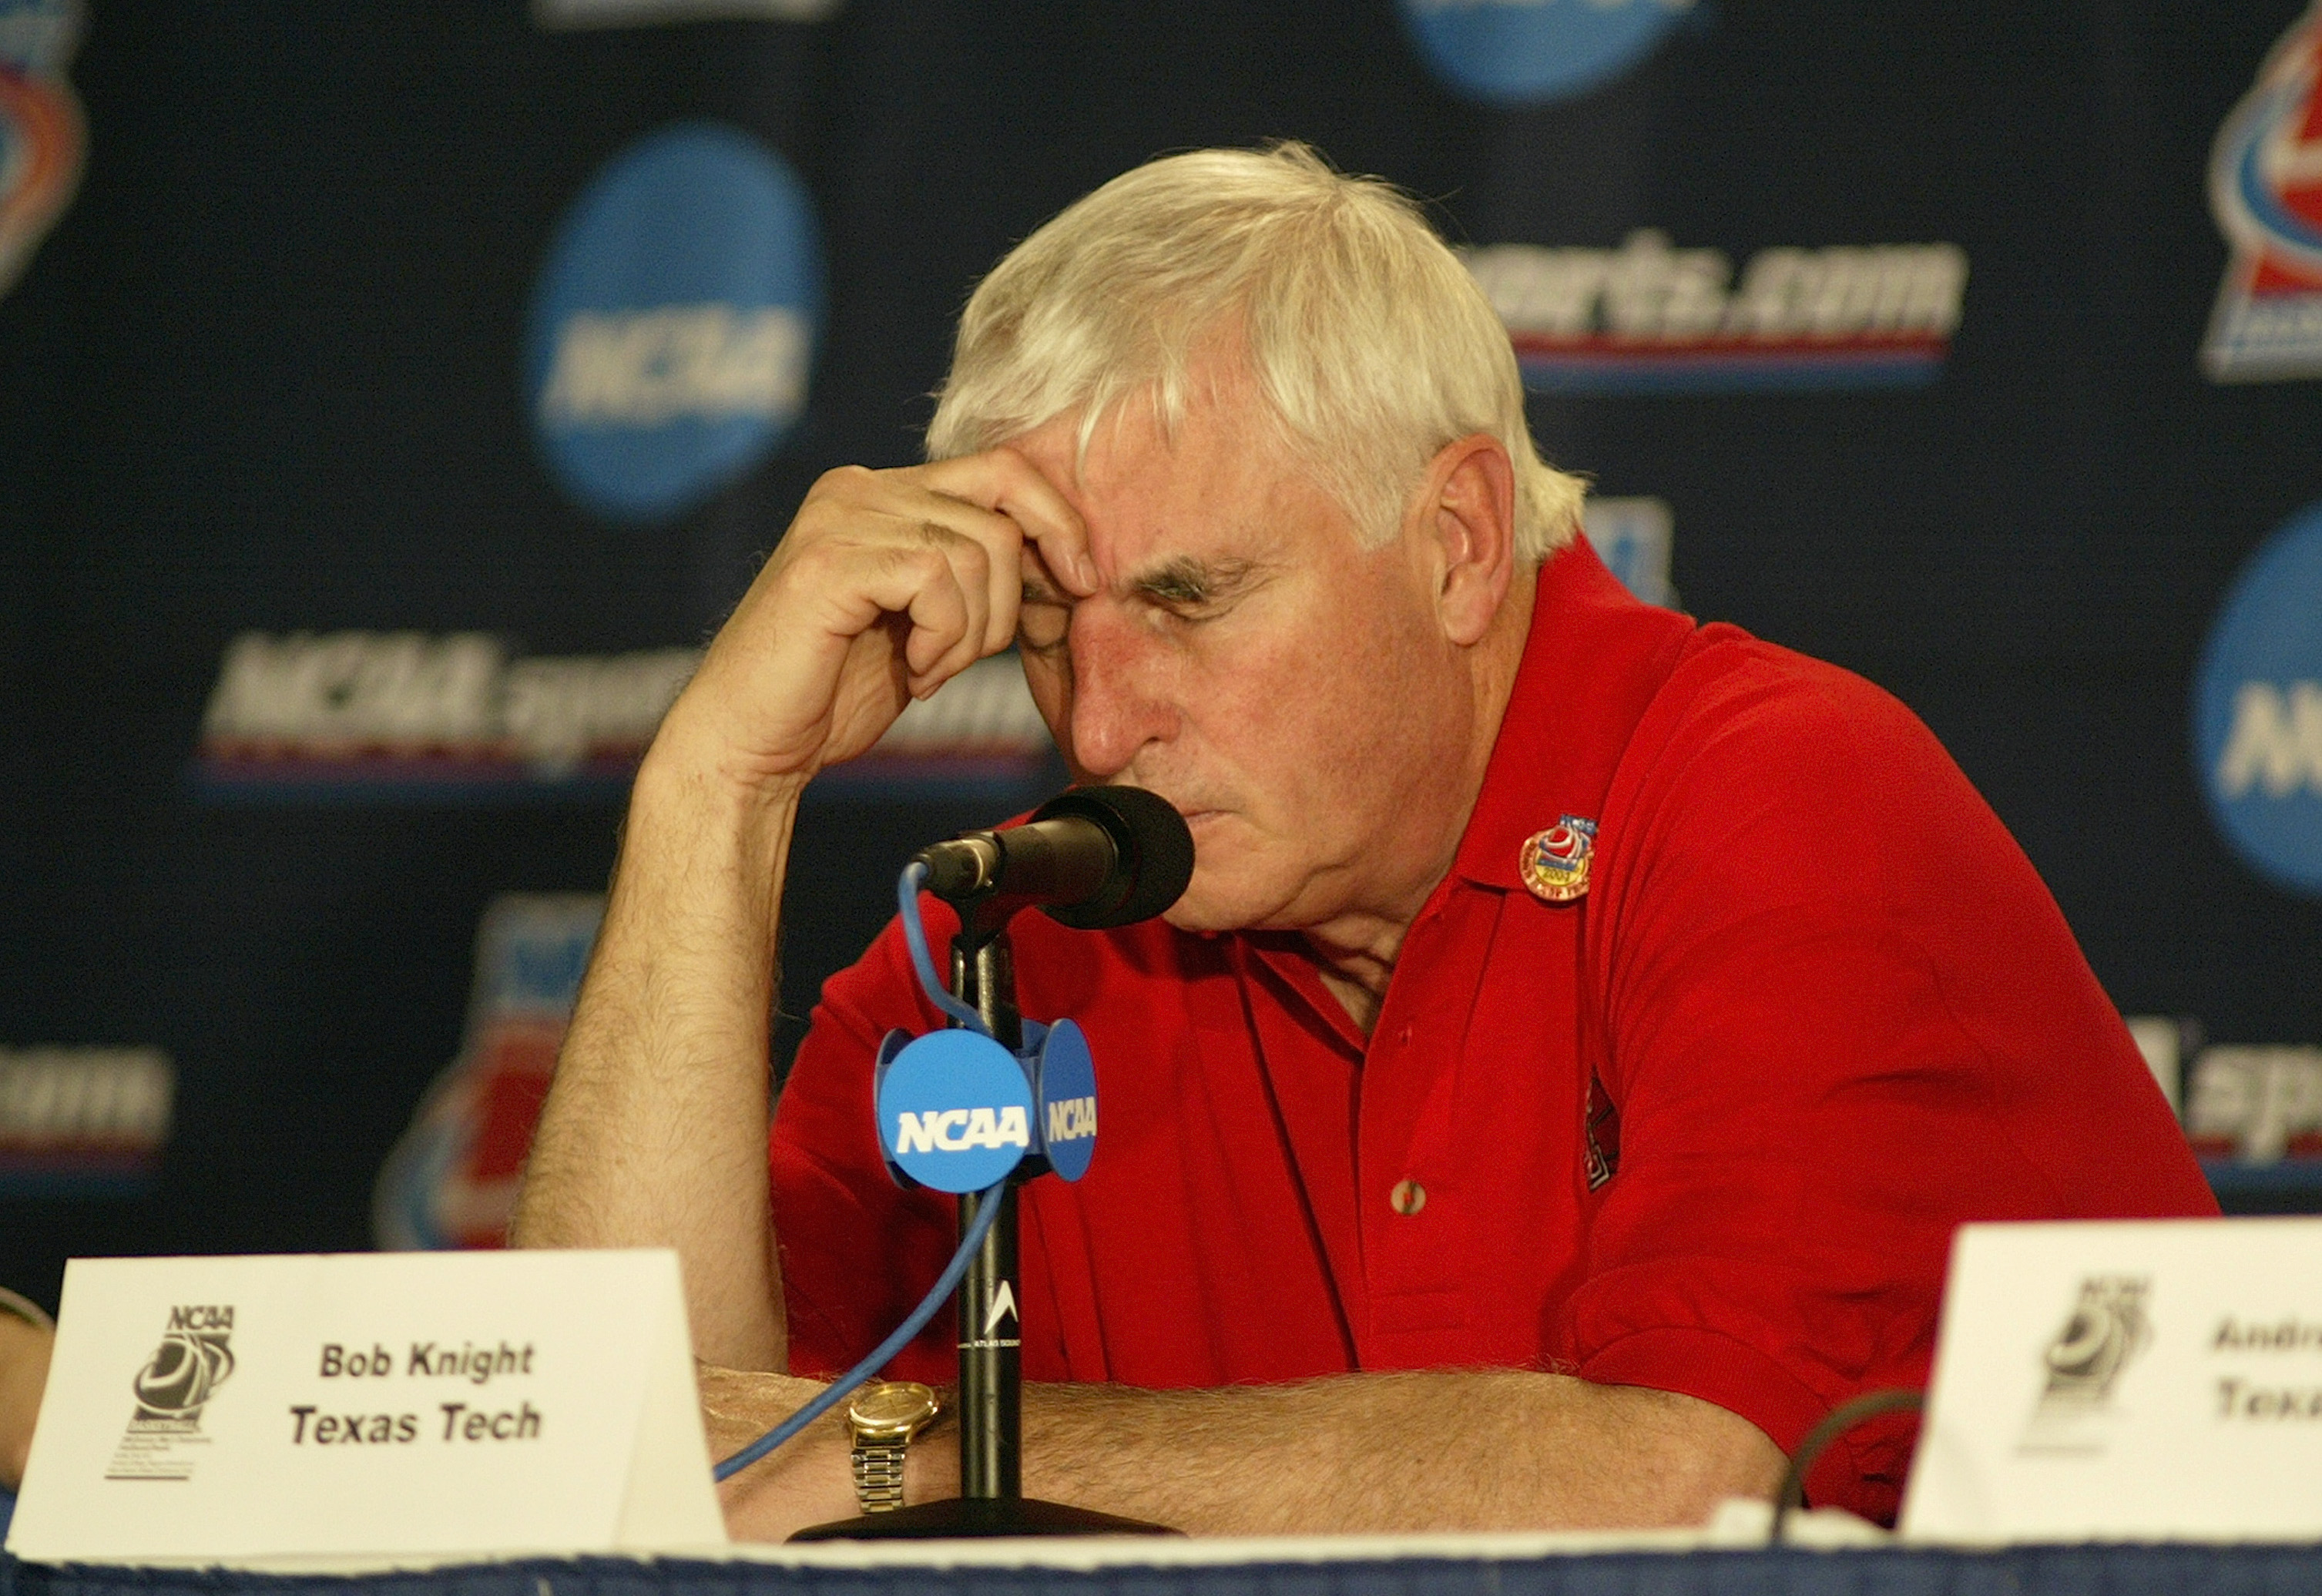 Tex Tech head coach Bob Knight after the loss to Saint Joseph's. (Getty Images)